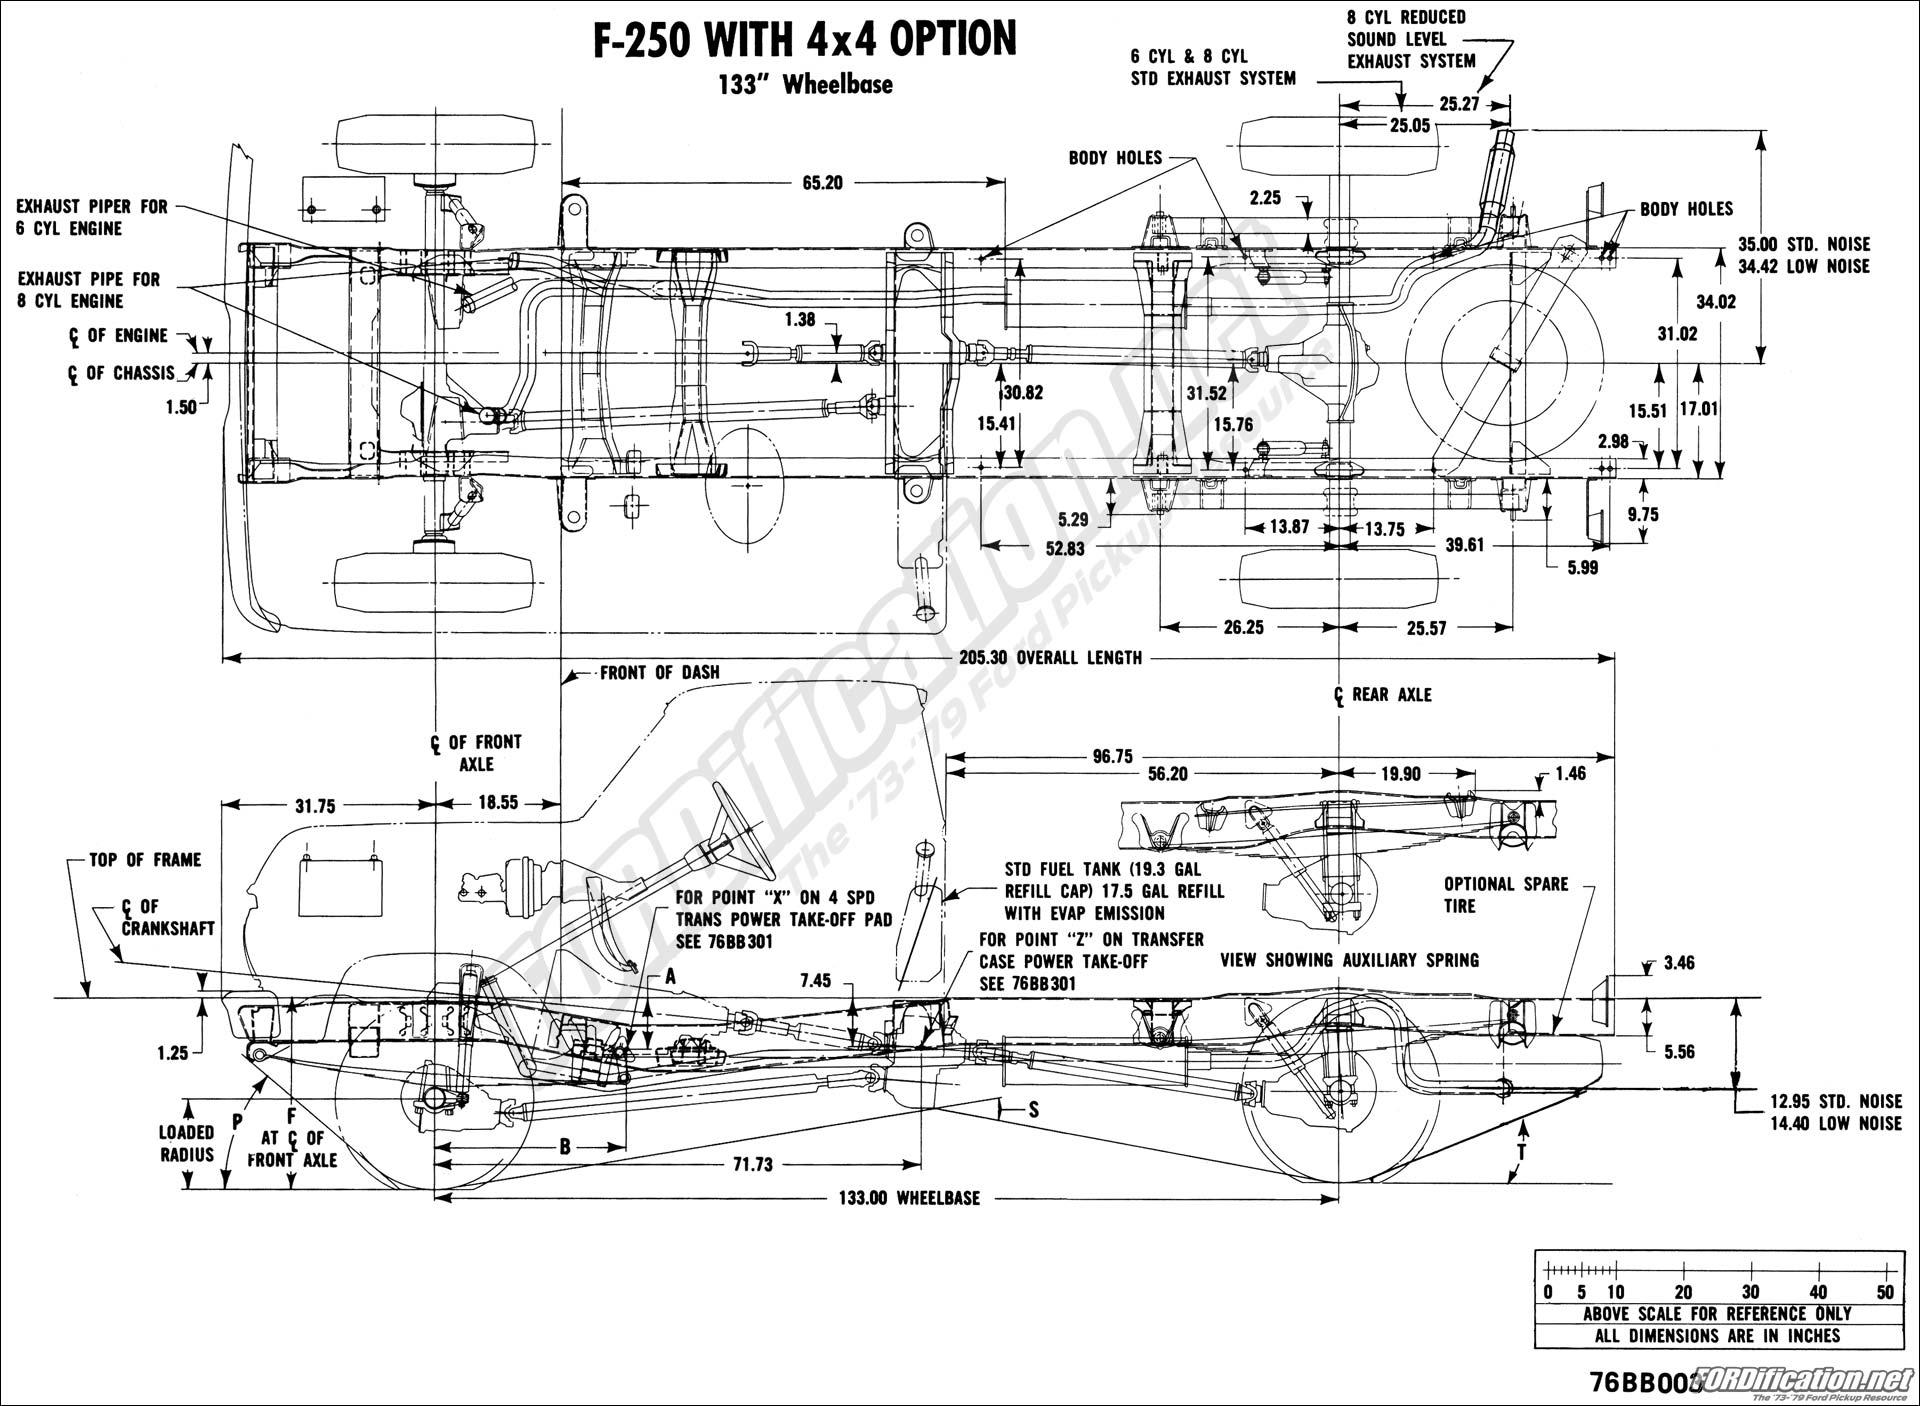 hight resolution of ford f150 frame dimensions autos post 1997 f150 cab fuse diagram 1997 f150 cab fuse diagram